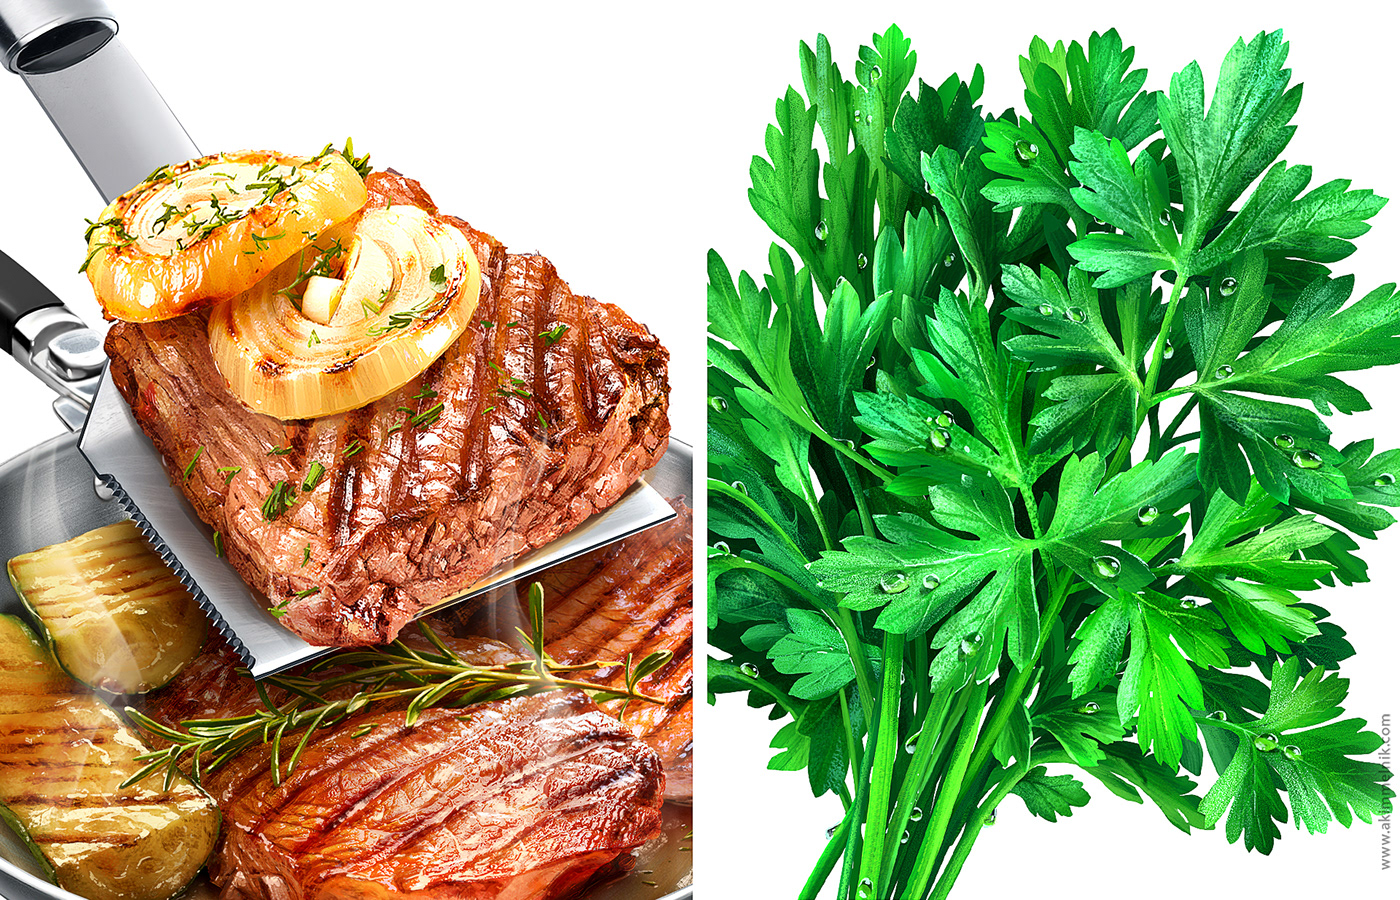 Illustrations of meat dishes and herbs for spice packages